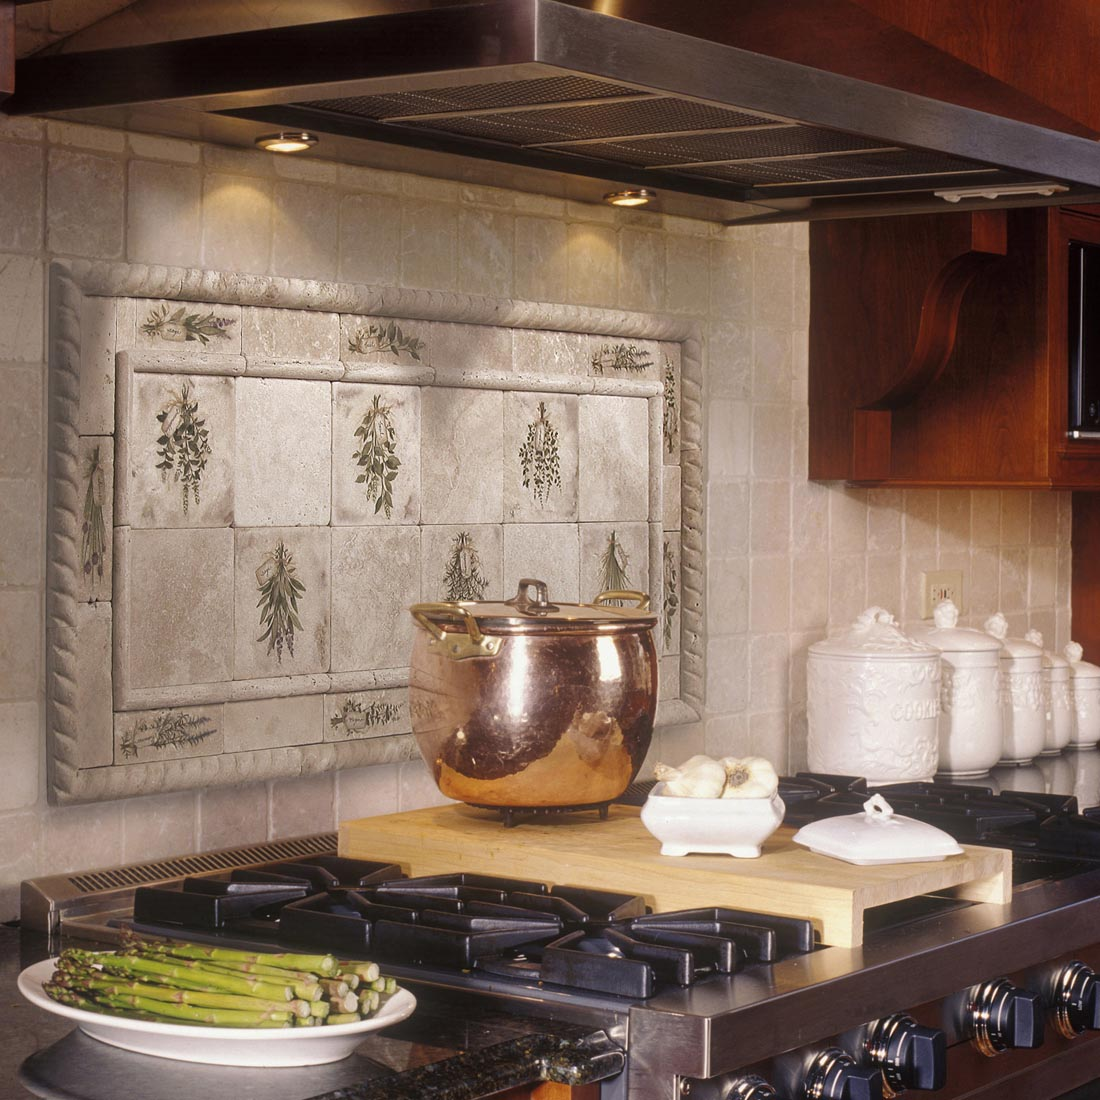 Backsplash Design Ideas For Kitchen Kitchen Backsplash Ideas Choose The Kitchen Backsplash